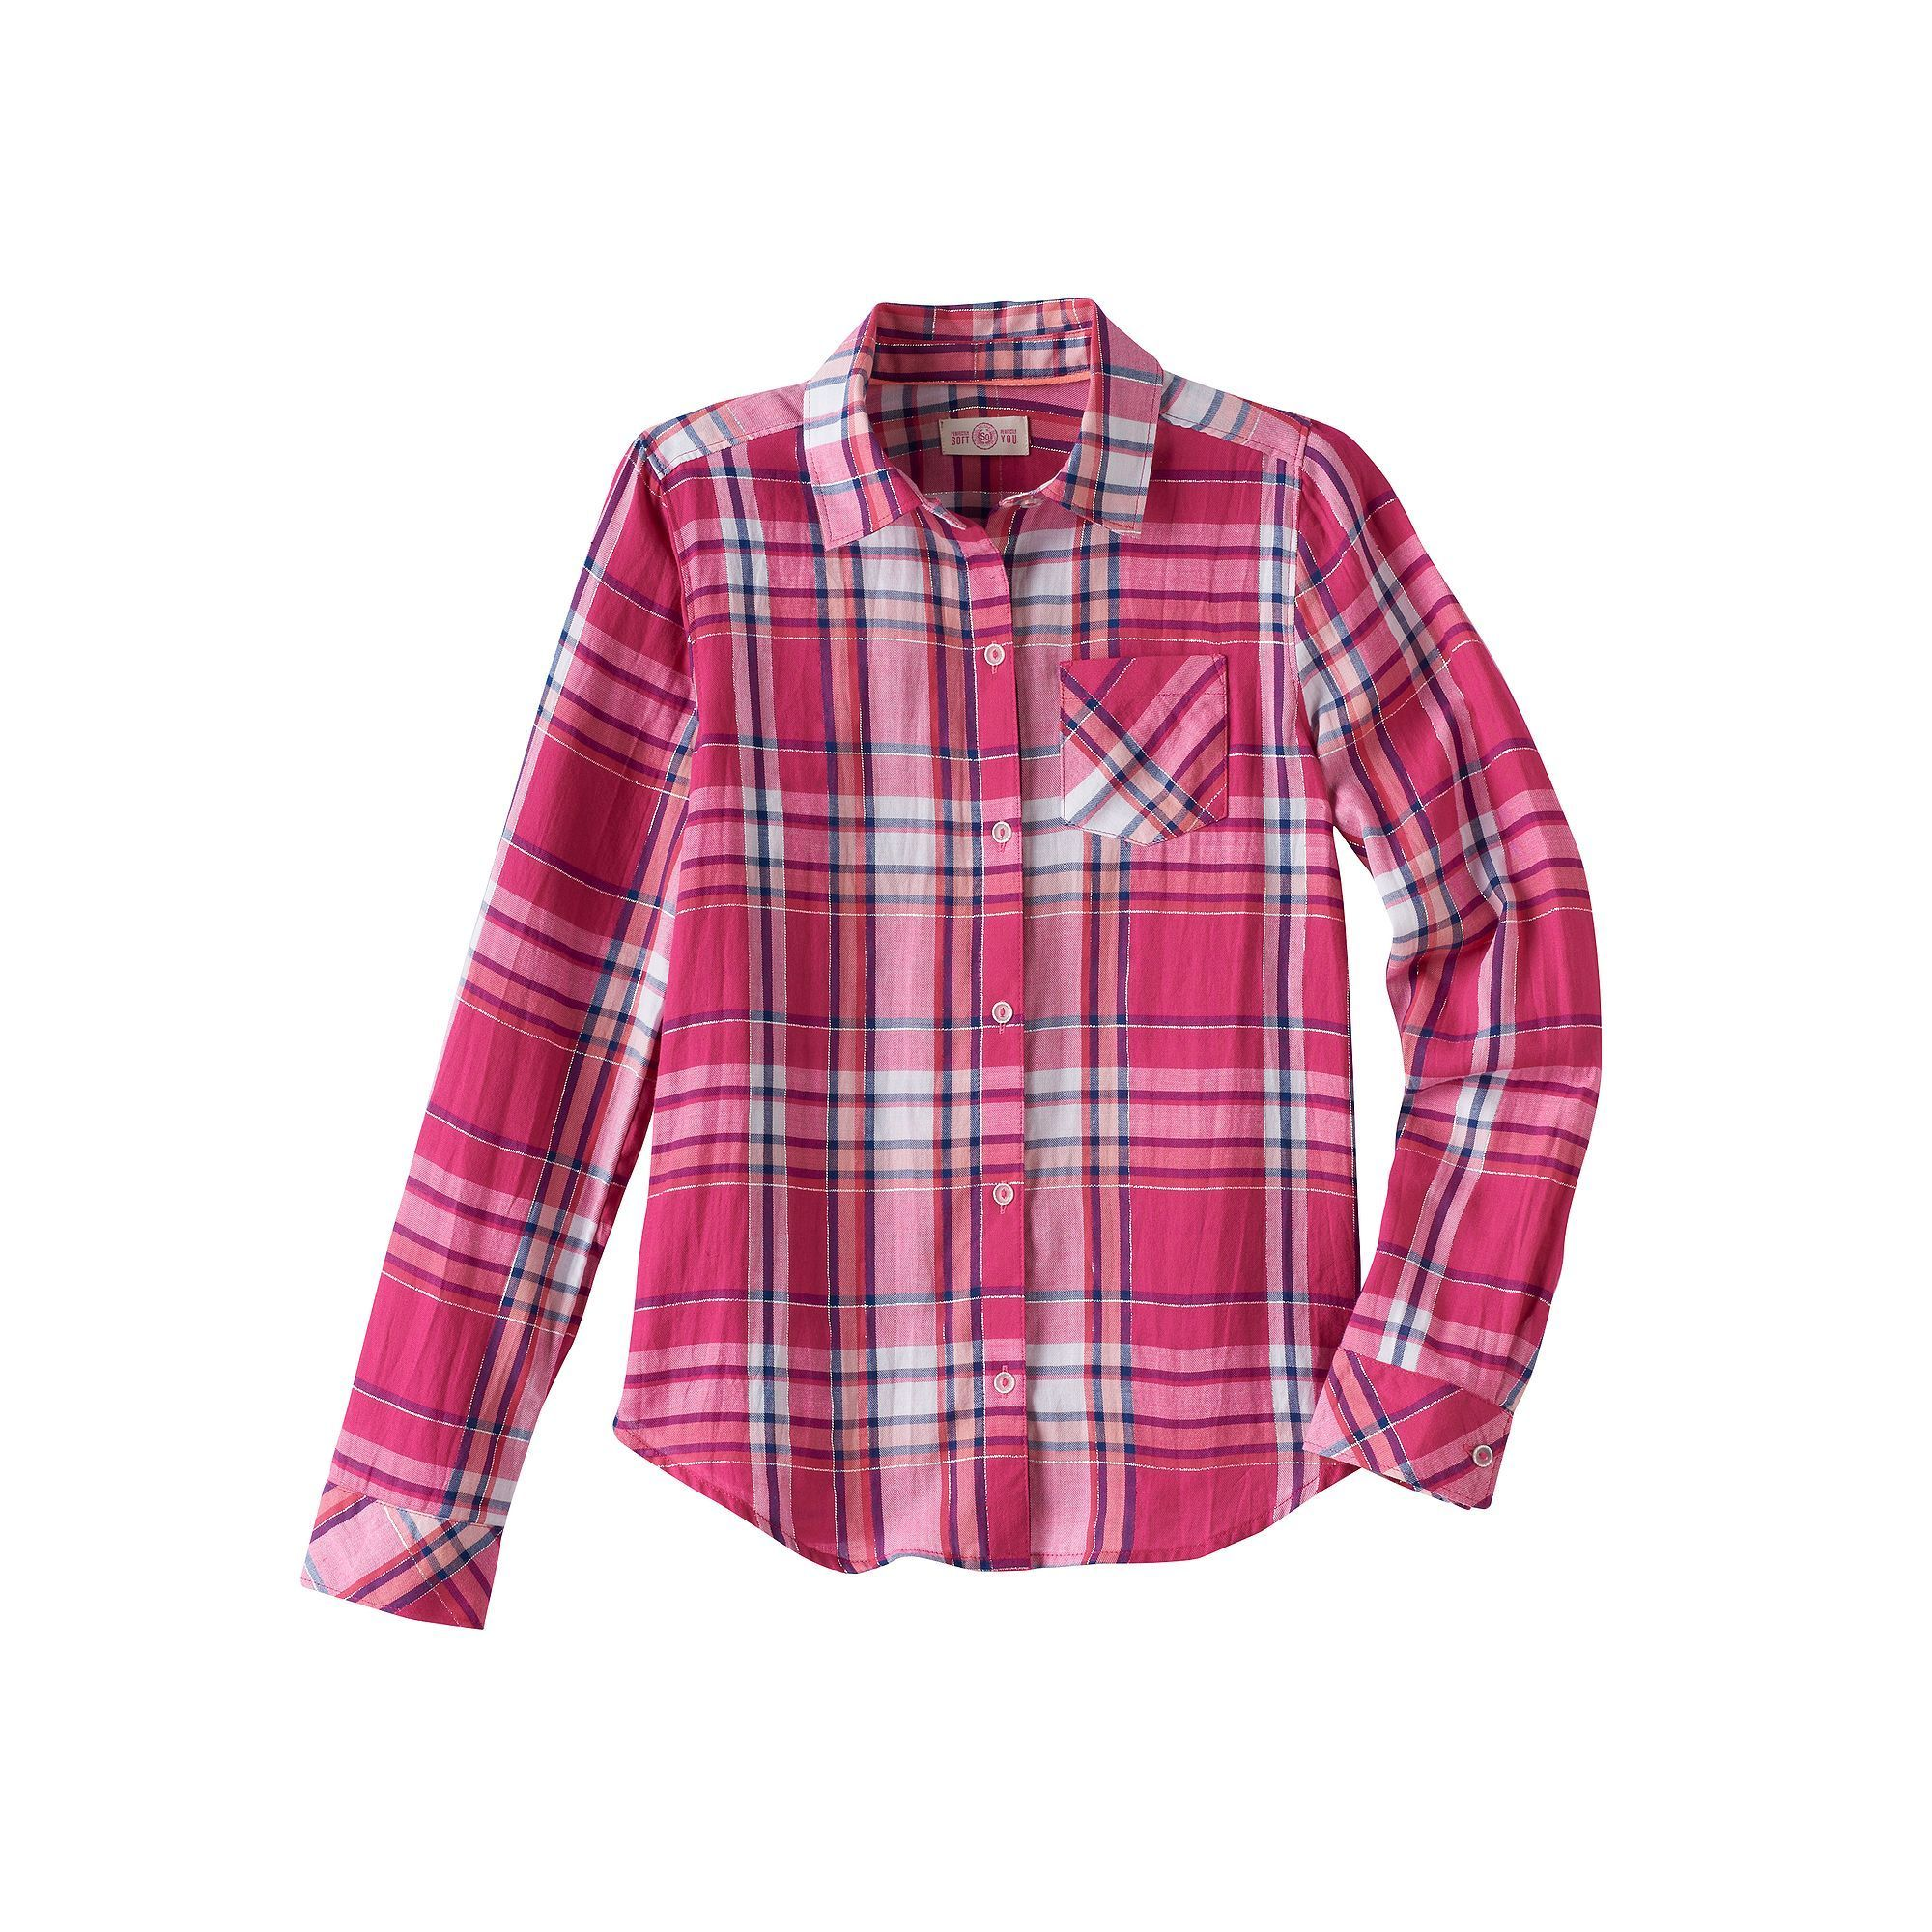 Flannel shirts at kohl's  Girls  u Plus Size SOÂ Shine Plaid ButtonDown Shirt Size